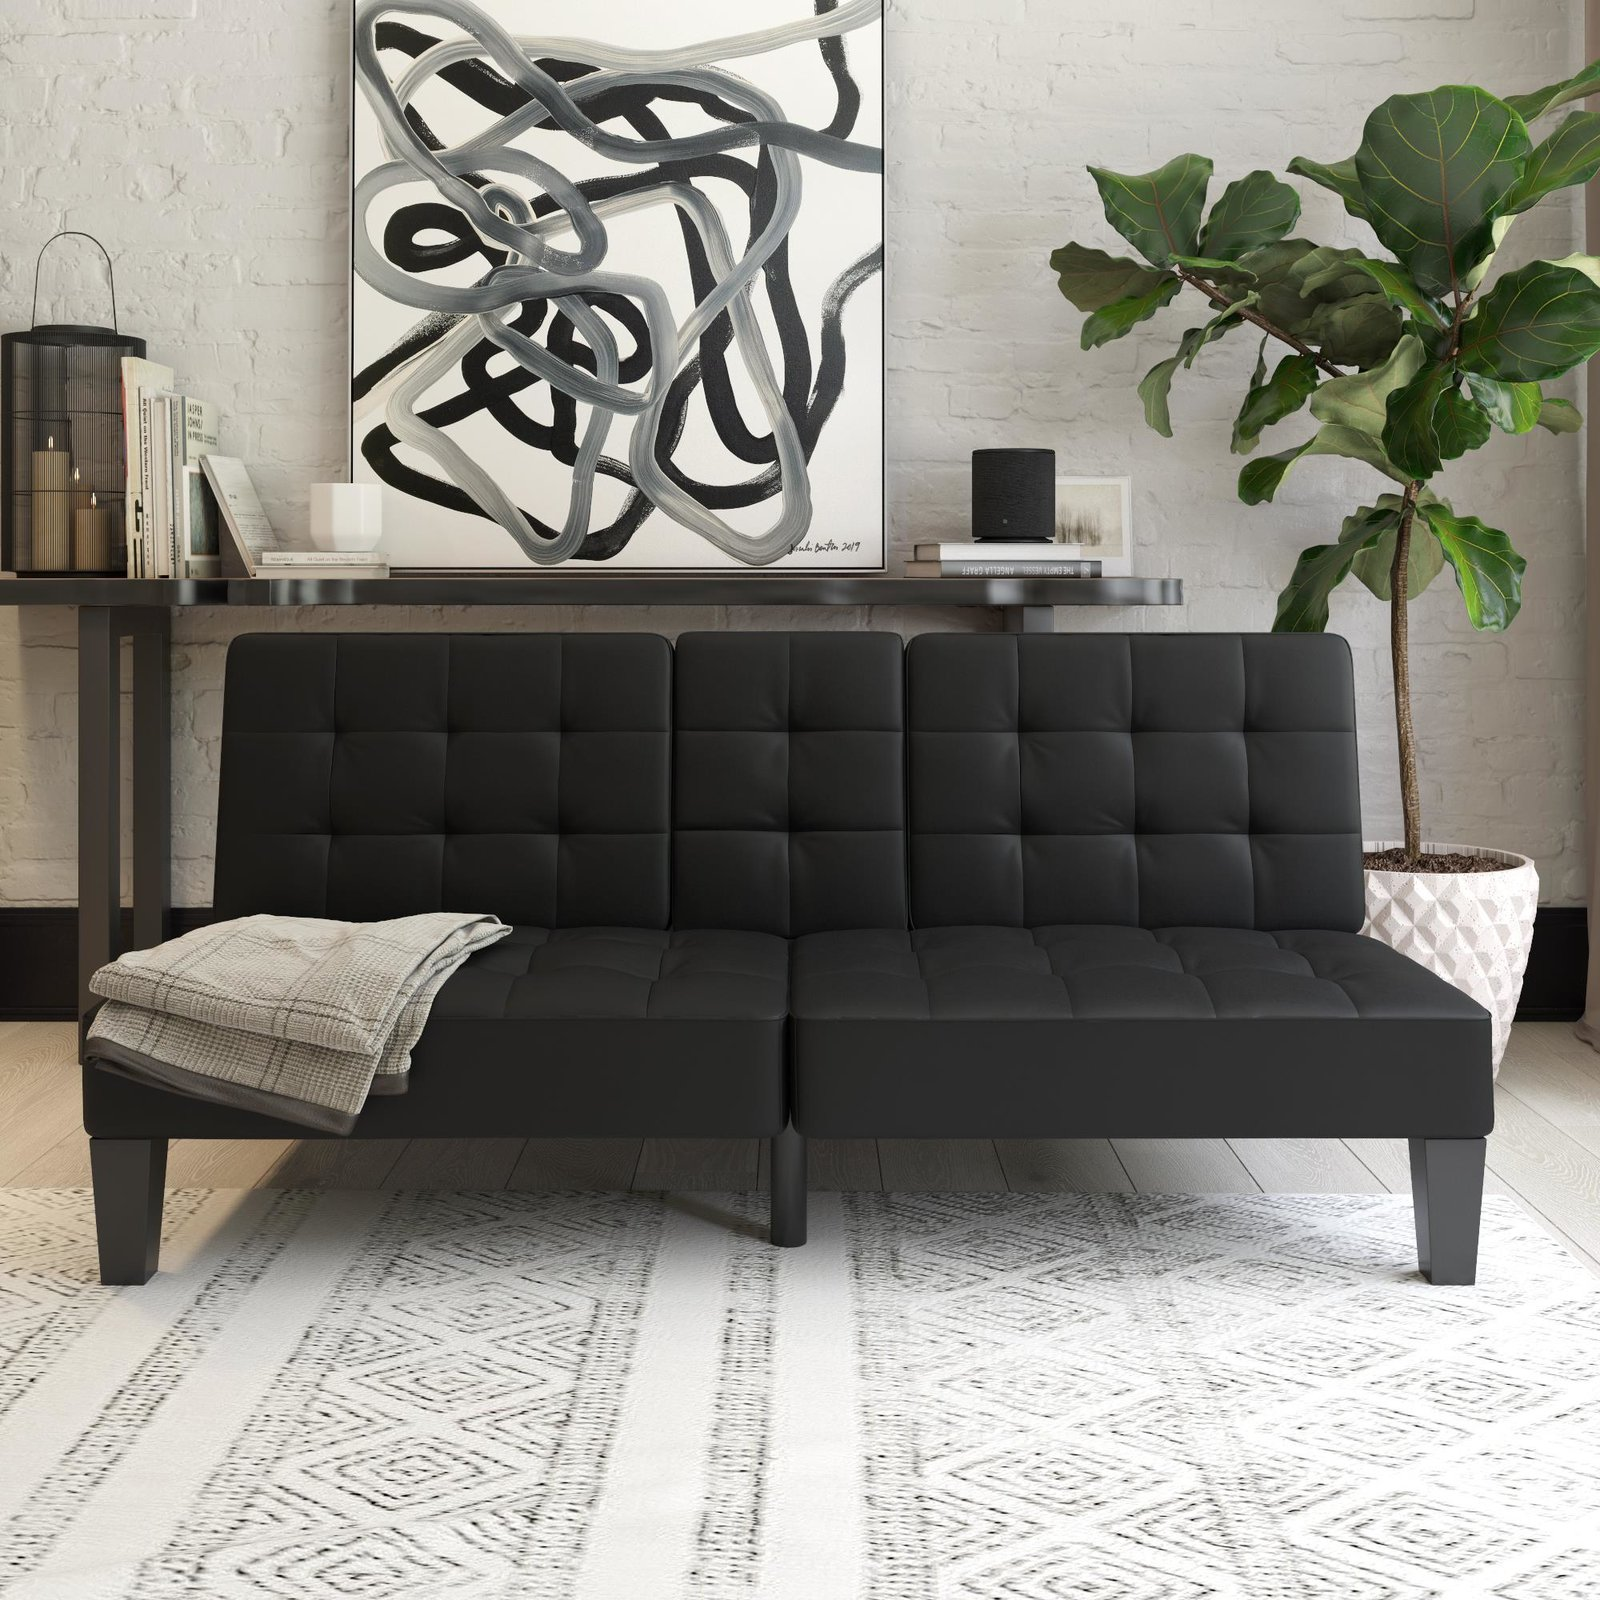 Tk tk  Photo 7 of 7 in Queer Eye's New Furniture Collection Is the Best Thing You Can Buy at Walmart